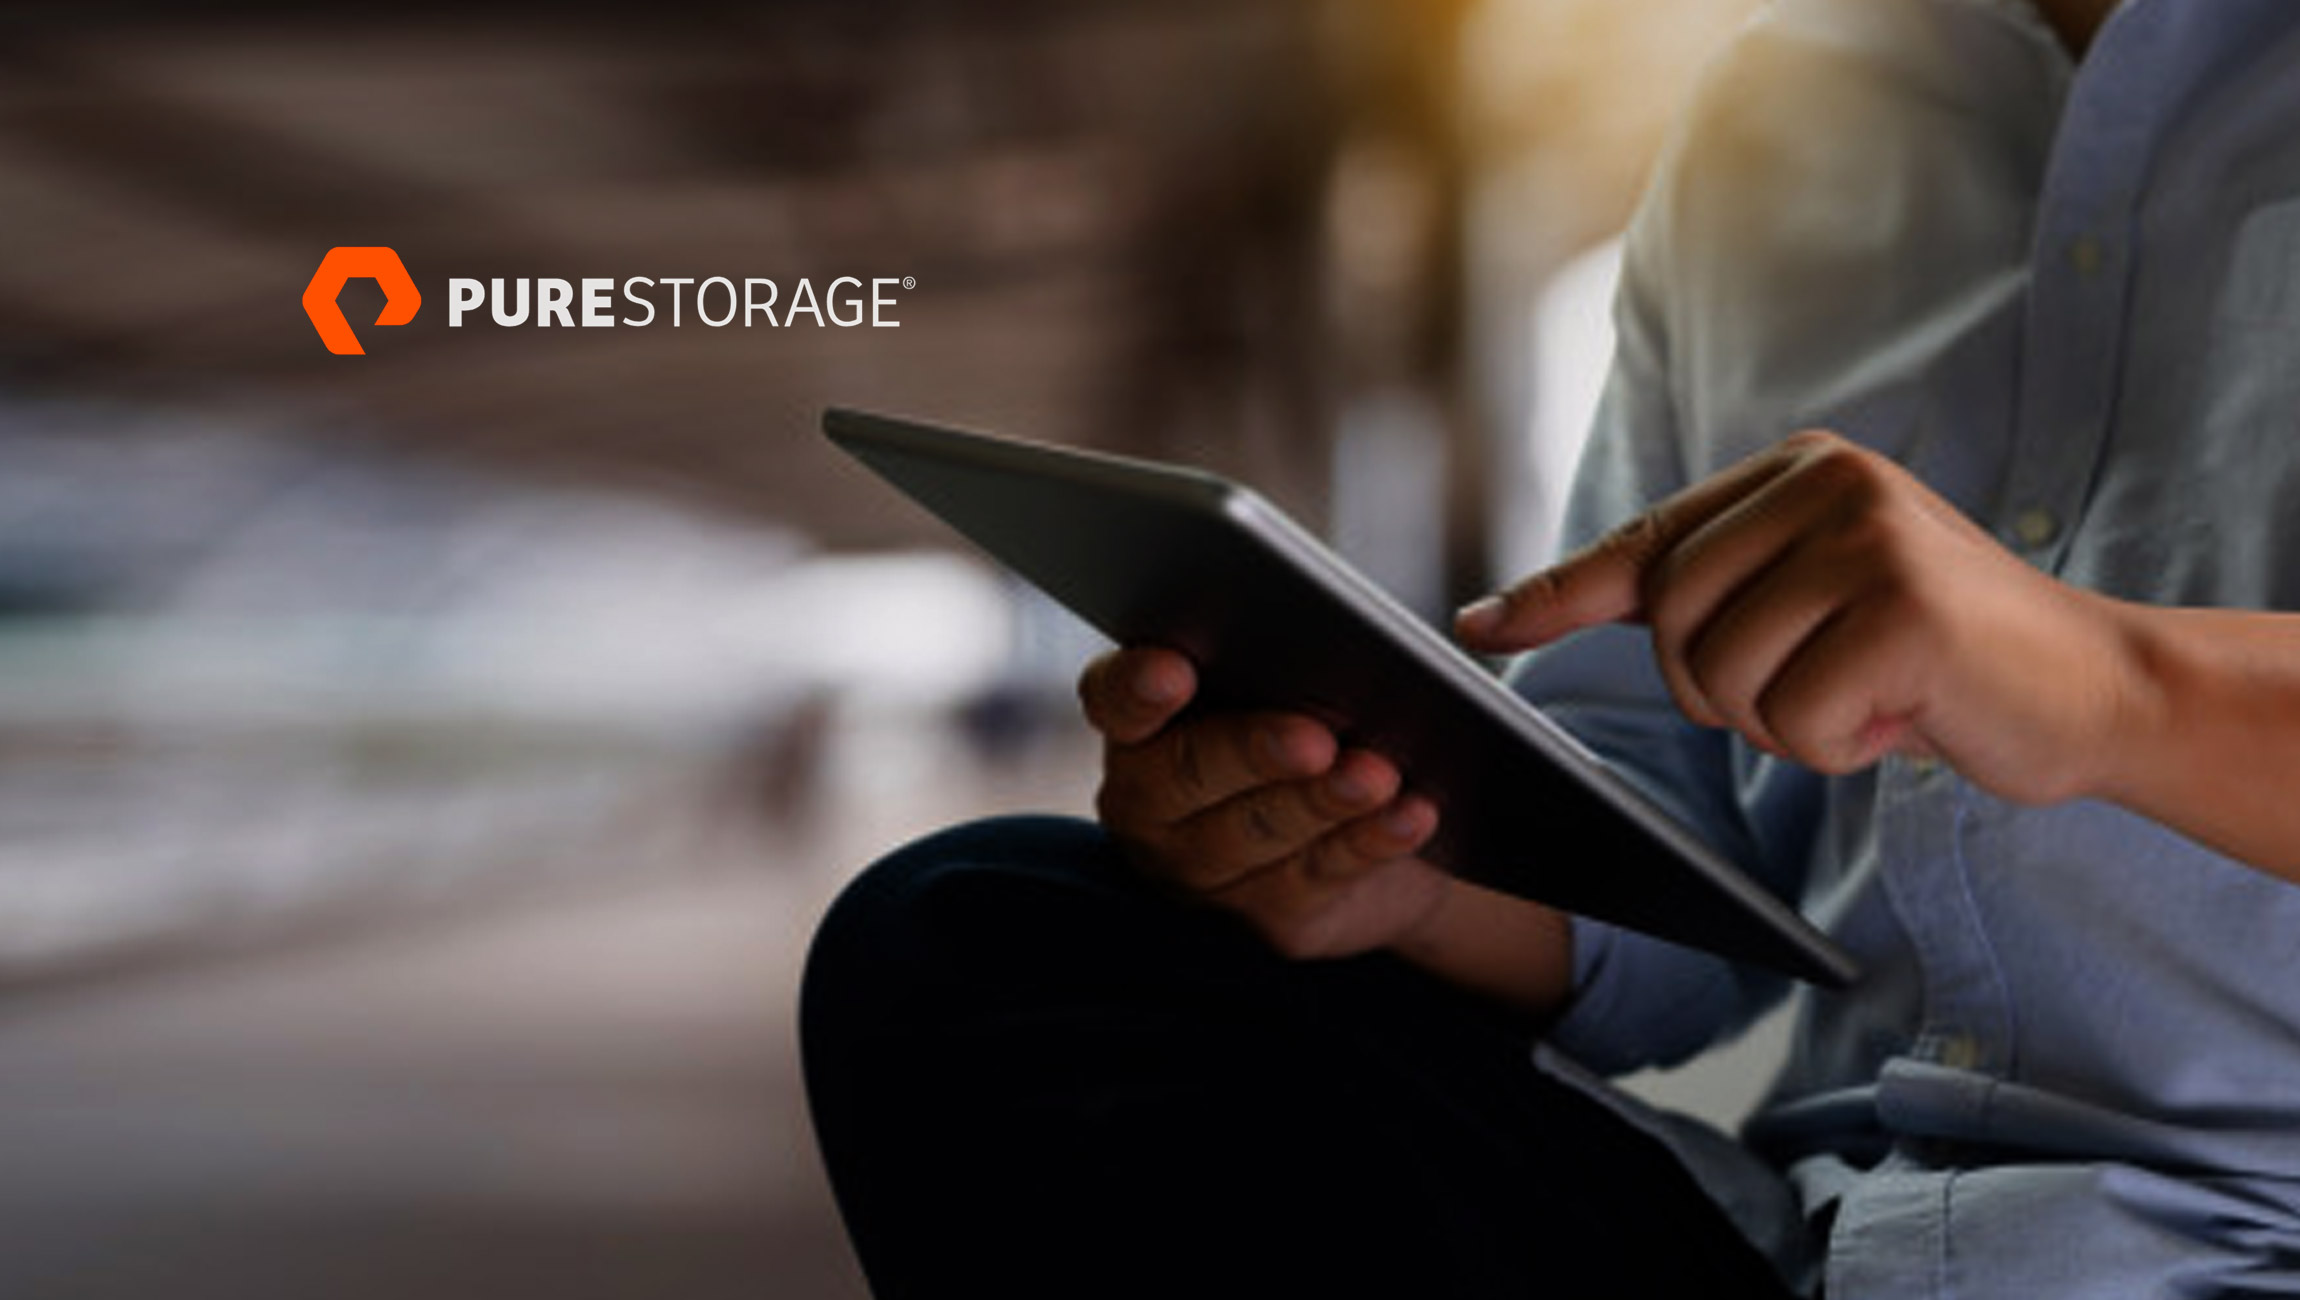 Pure Storage Named a Leader in Gartner Magic Quadrant for Primary Storage Arrays